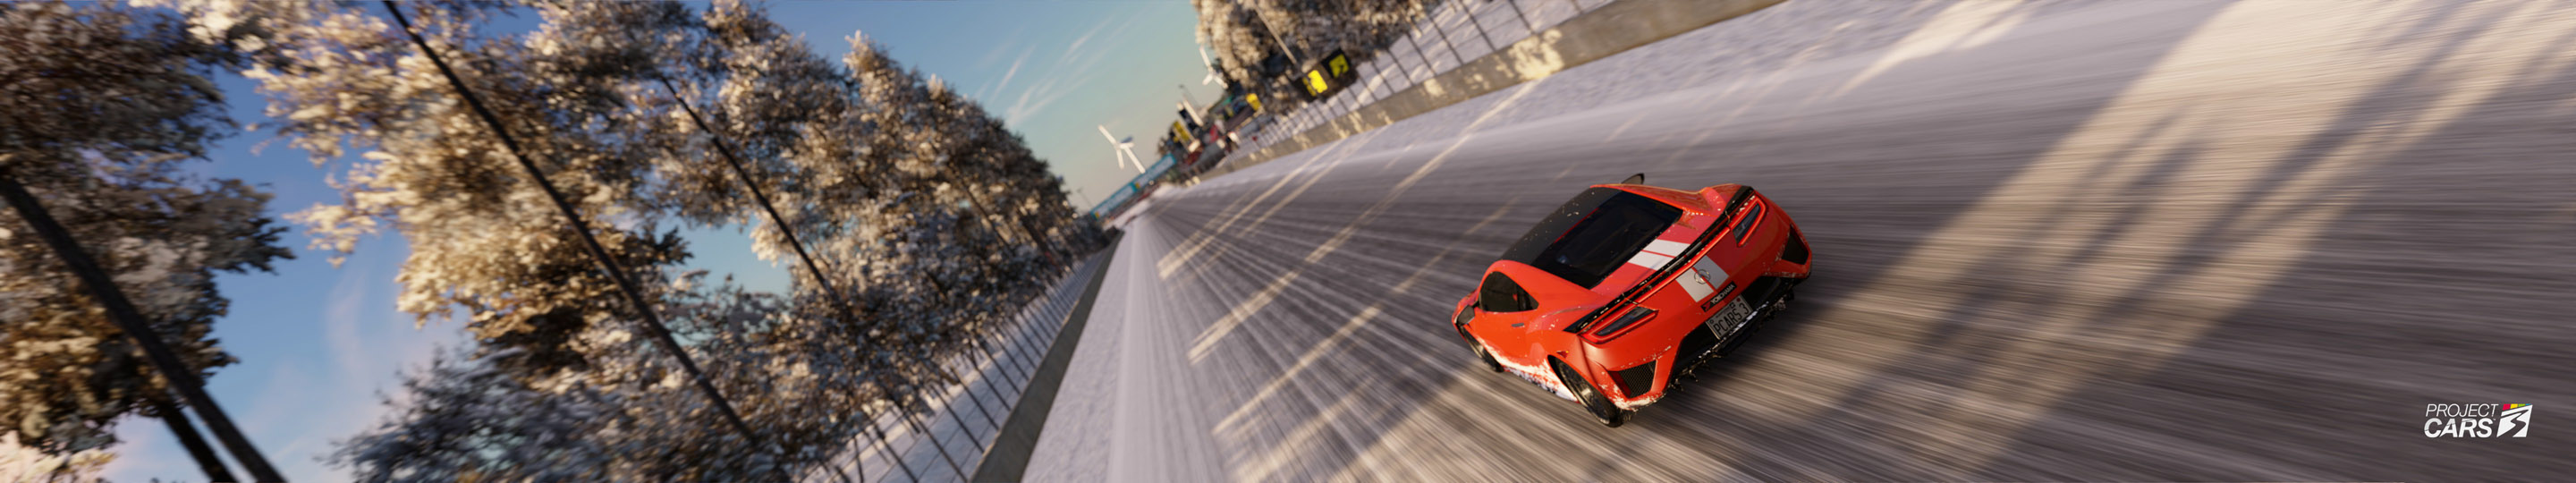 2 PROJECT CARS 3 ACURA NSX 2020 at ZOLDER Snow copy.jpg